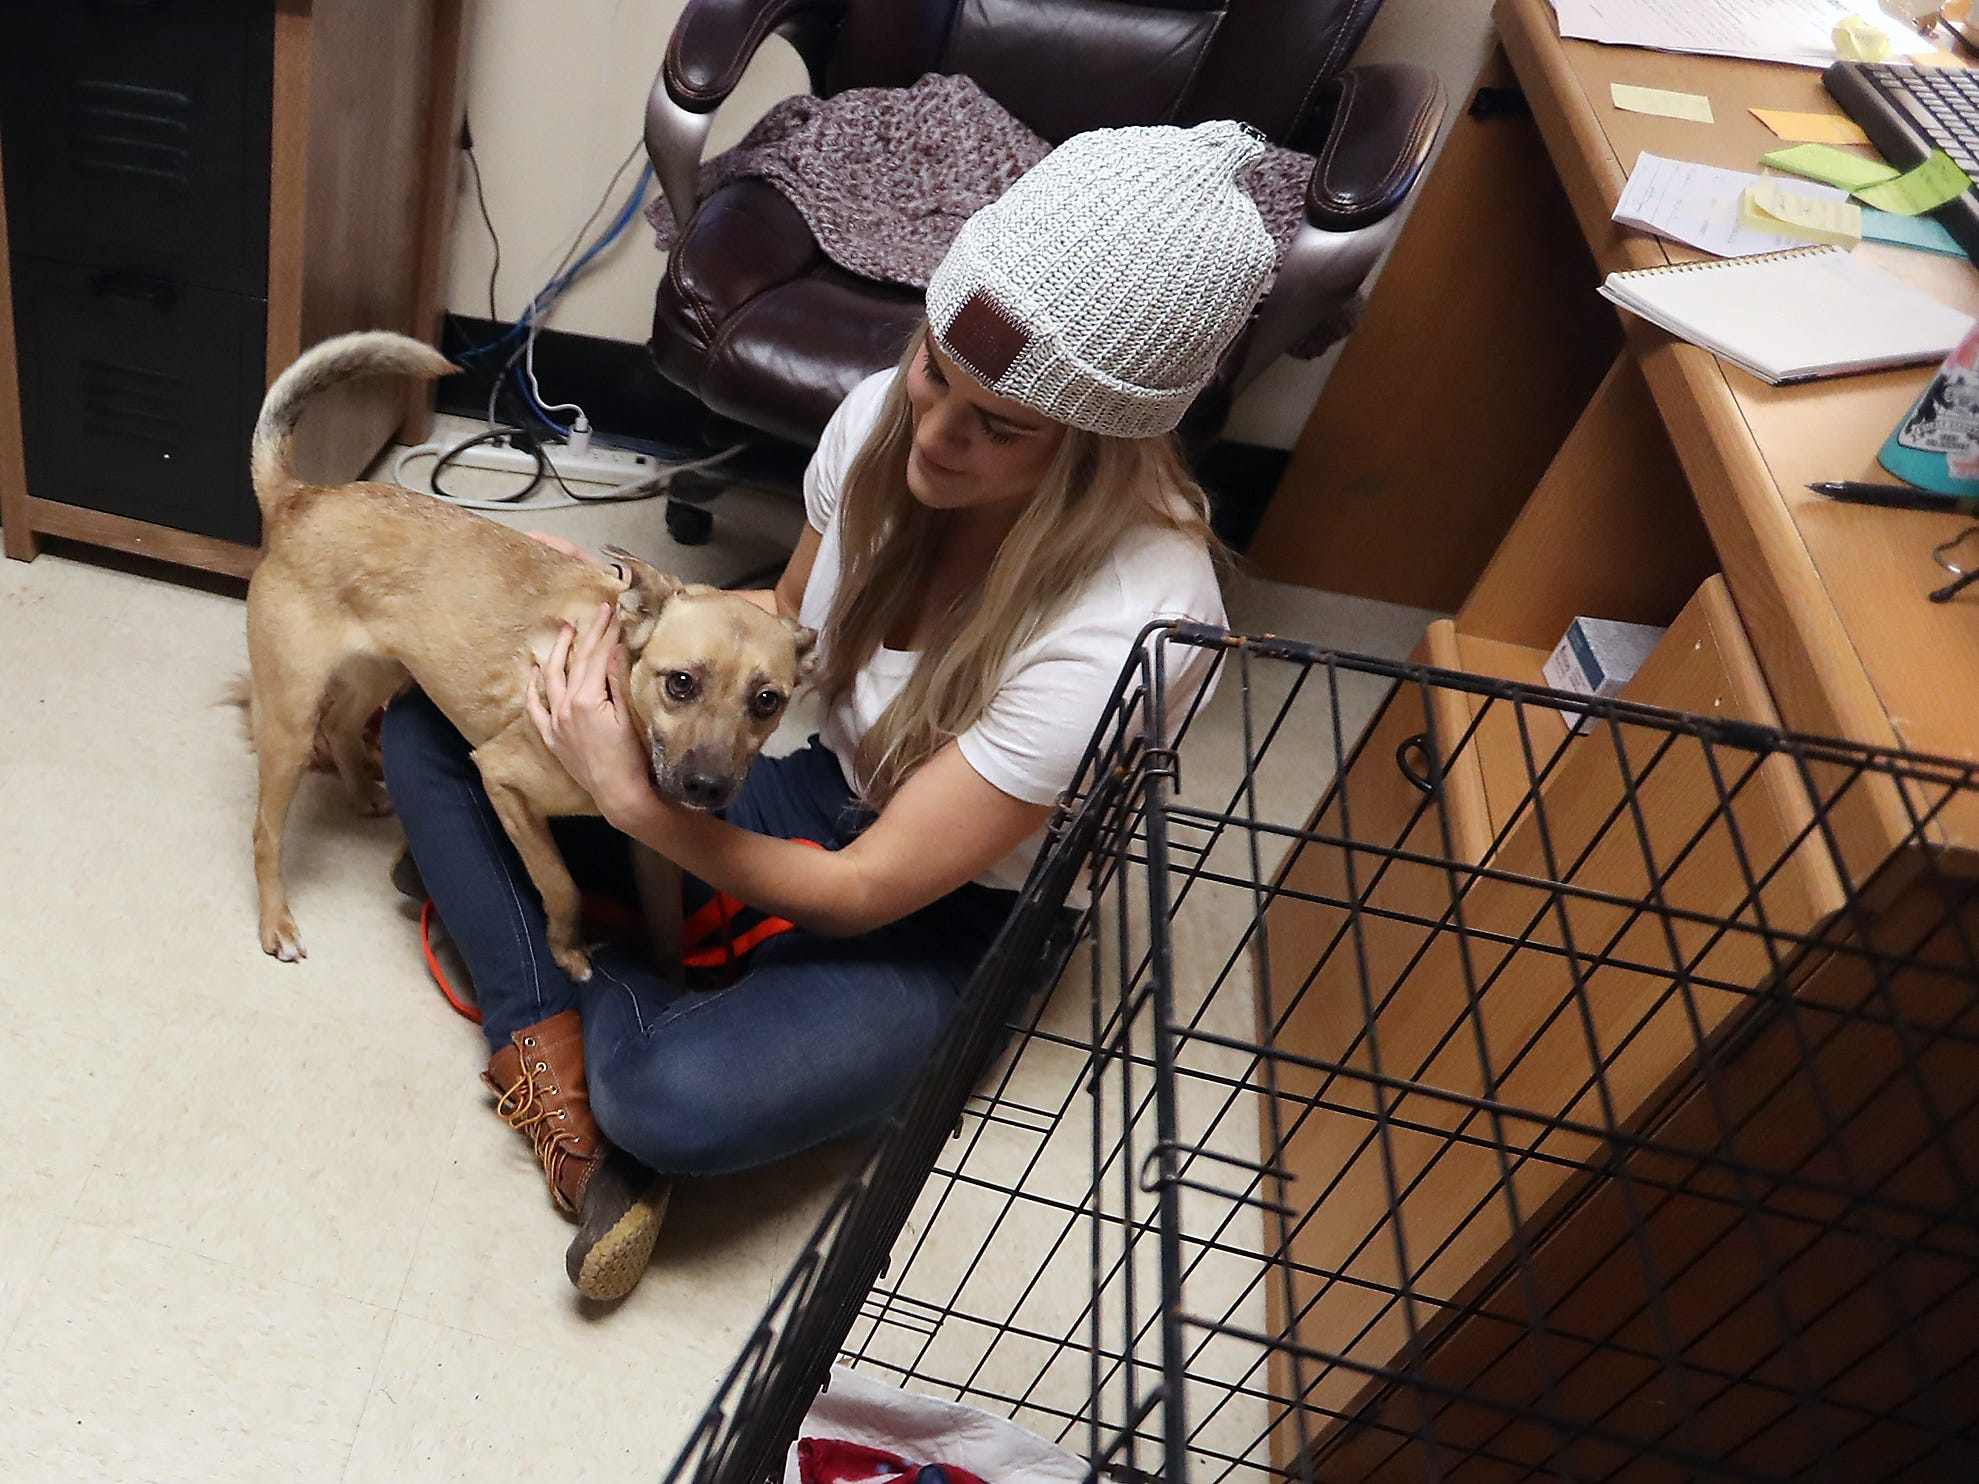 Eli crawls into the lap of adoption coordinator Ashley Cipolletti while spending some time in Cipolletti's office at the Kitsap Humane Society in Silverdale on Friday, February 1, 2019. Eli has been at the shelter for 40 days and the relaxing atmosphere of Cipolletti's office, as well as the outings away from the shelter, have helped Eli come out of his shell and show off his loving personality.